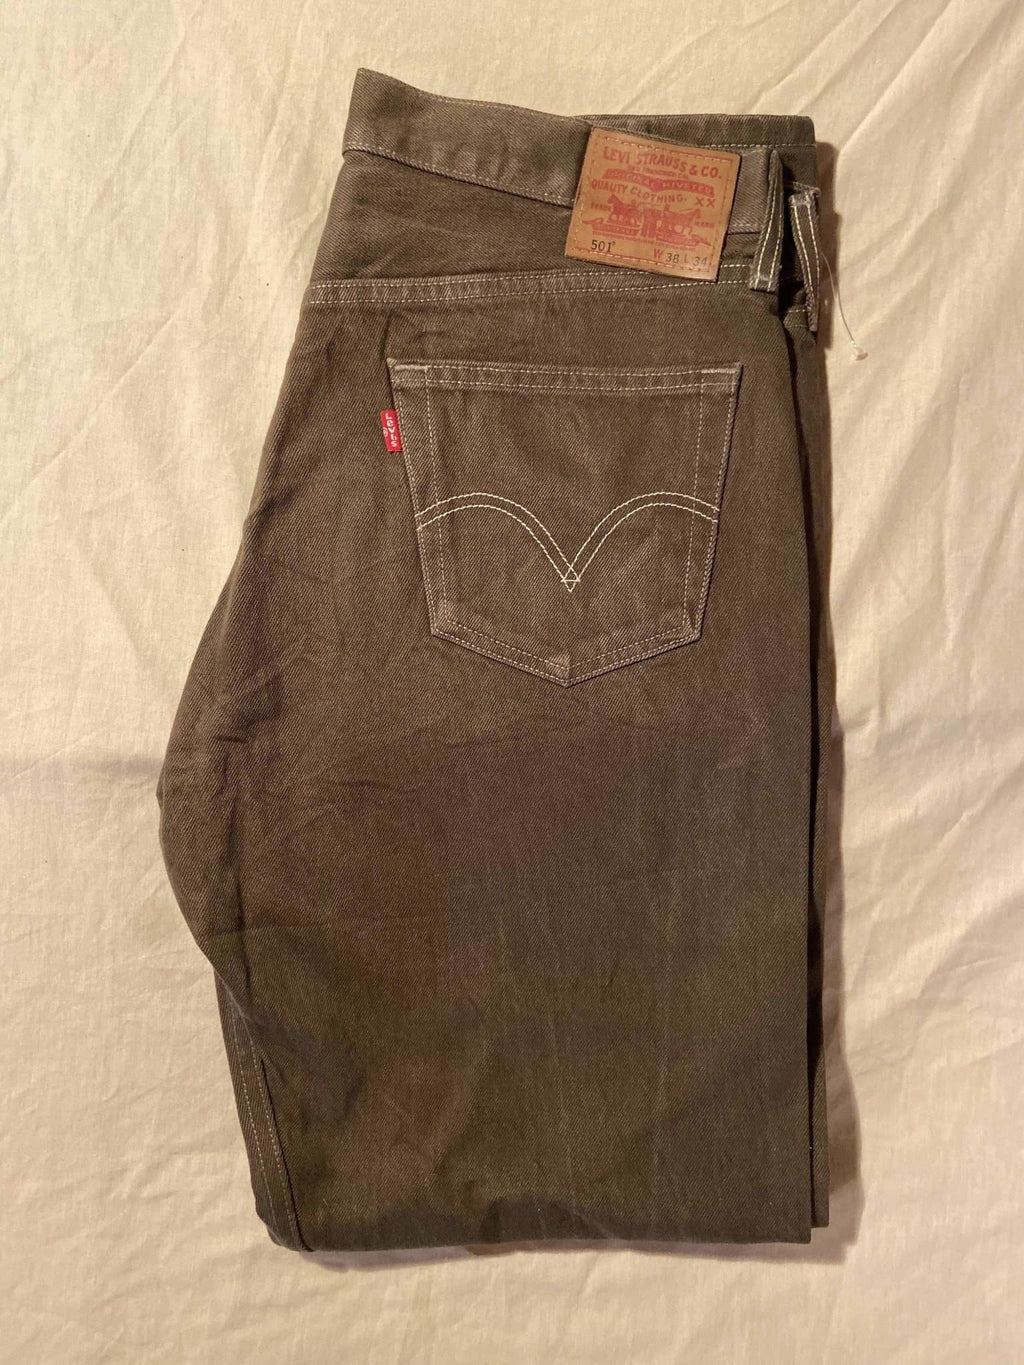 Immaculate As New Without Tags Levi's Original 501 Regular Fit Jeans W38 L34 (DF5) - Discounted Deals UK